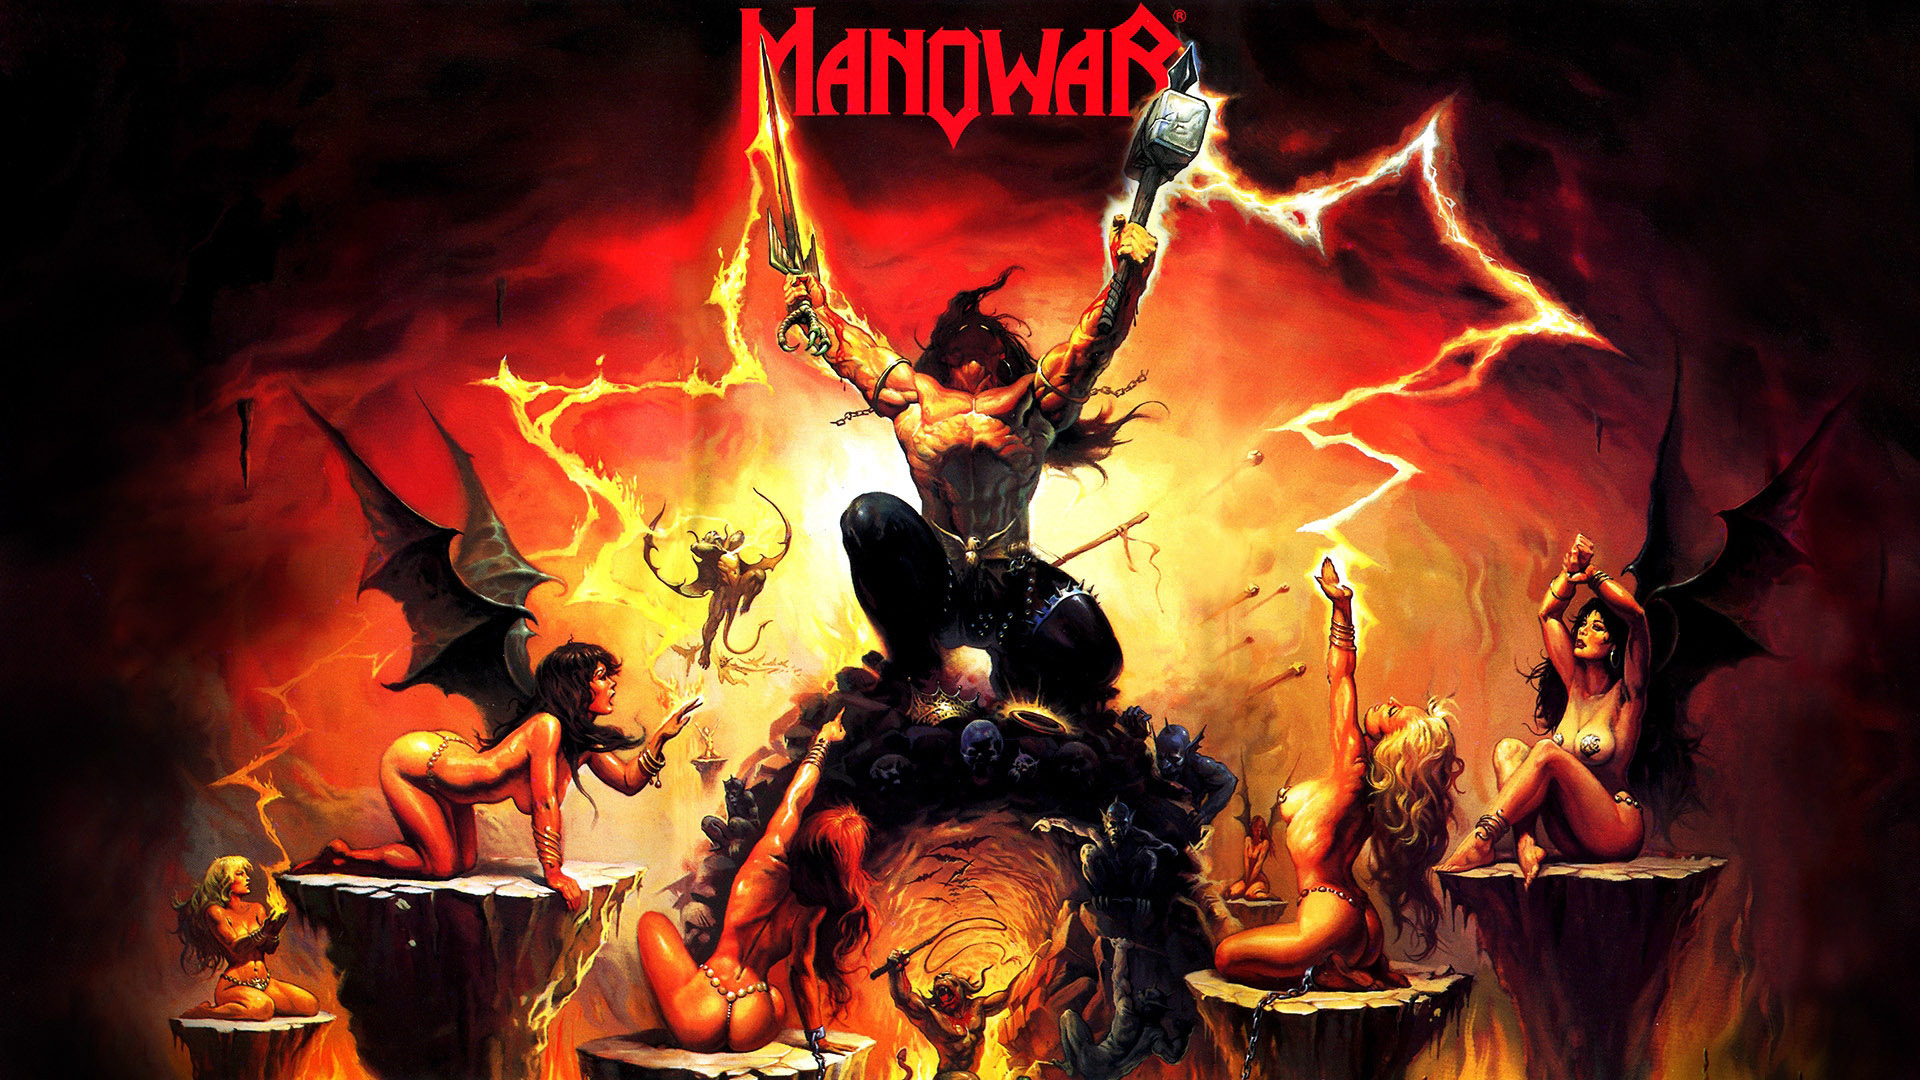 Manowar - The Triumph of Steel